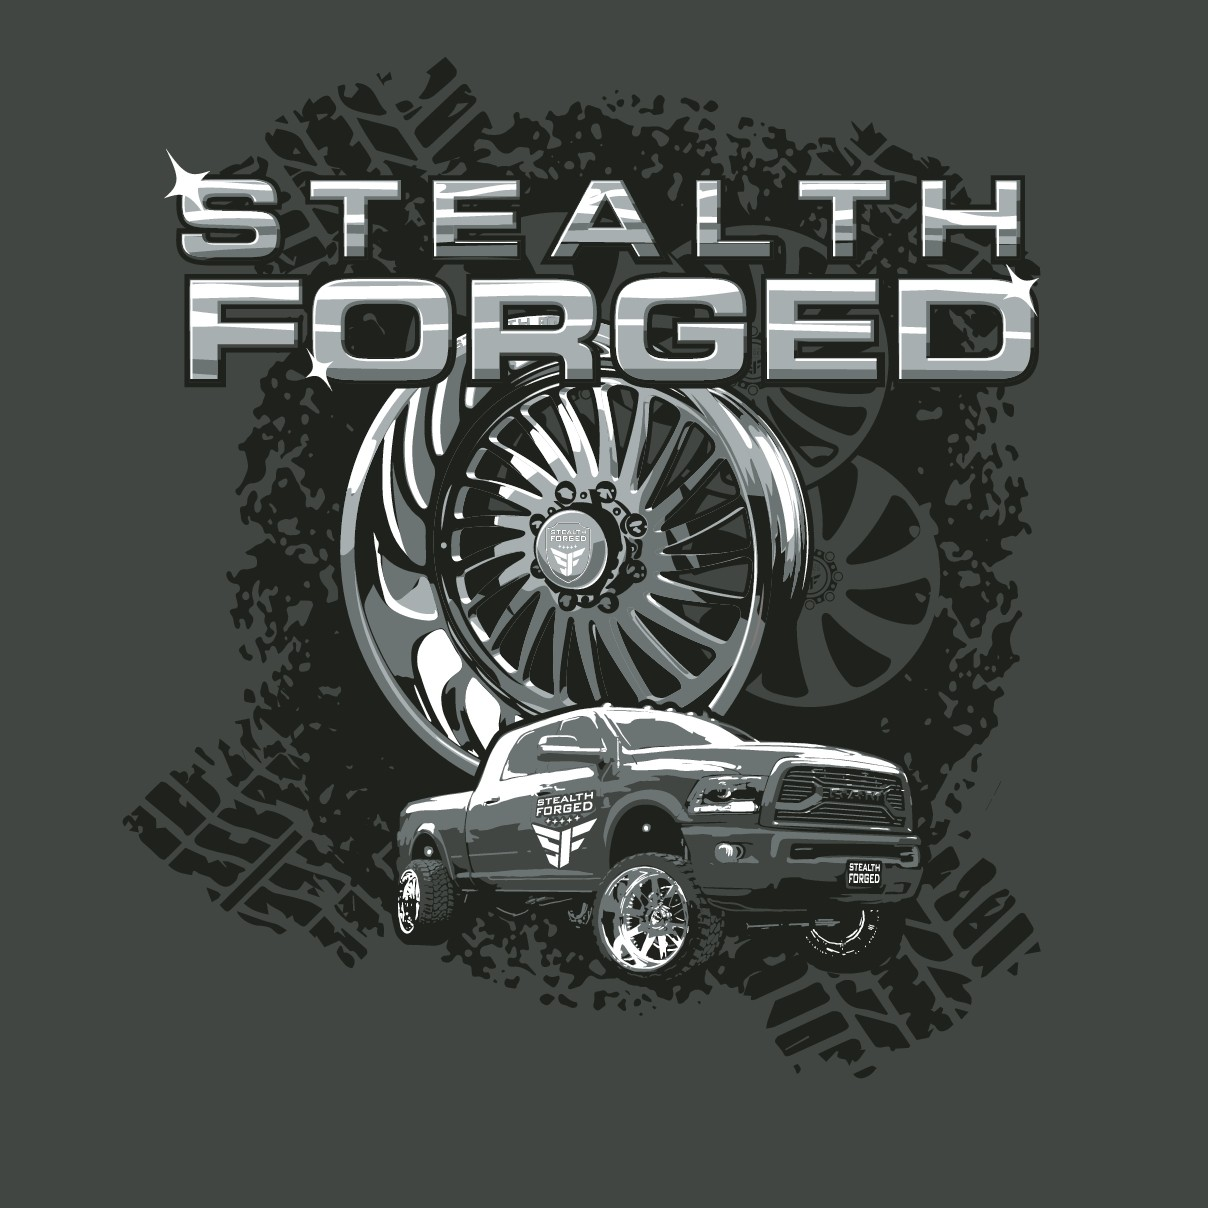 STEALTH FORGED T-SHIRT DESIGN